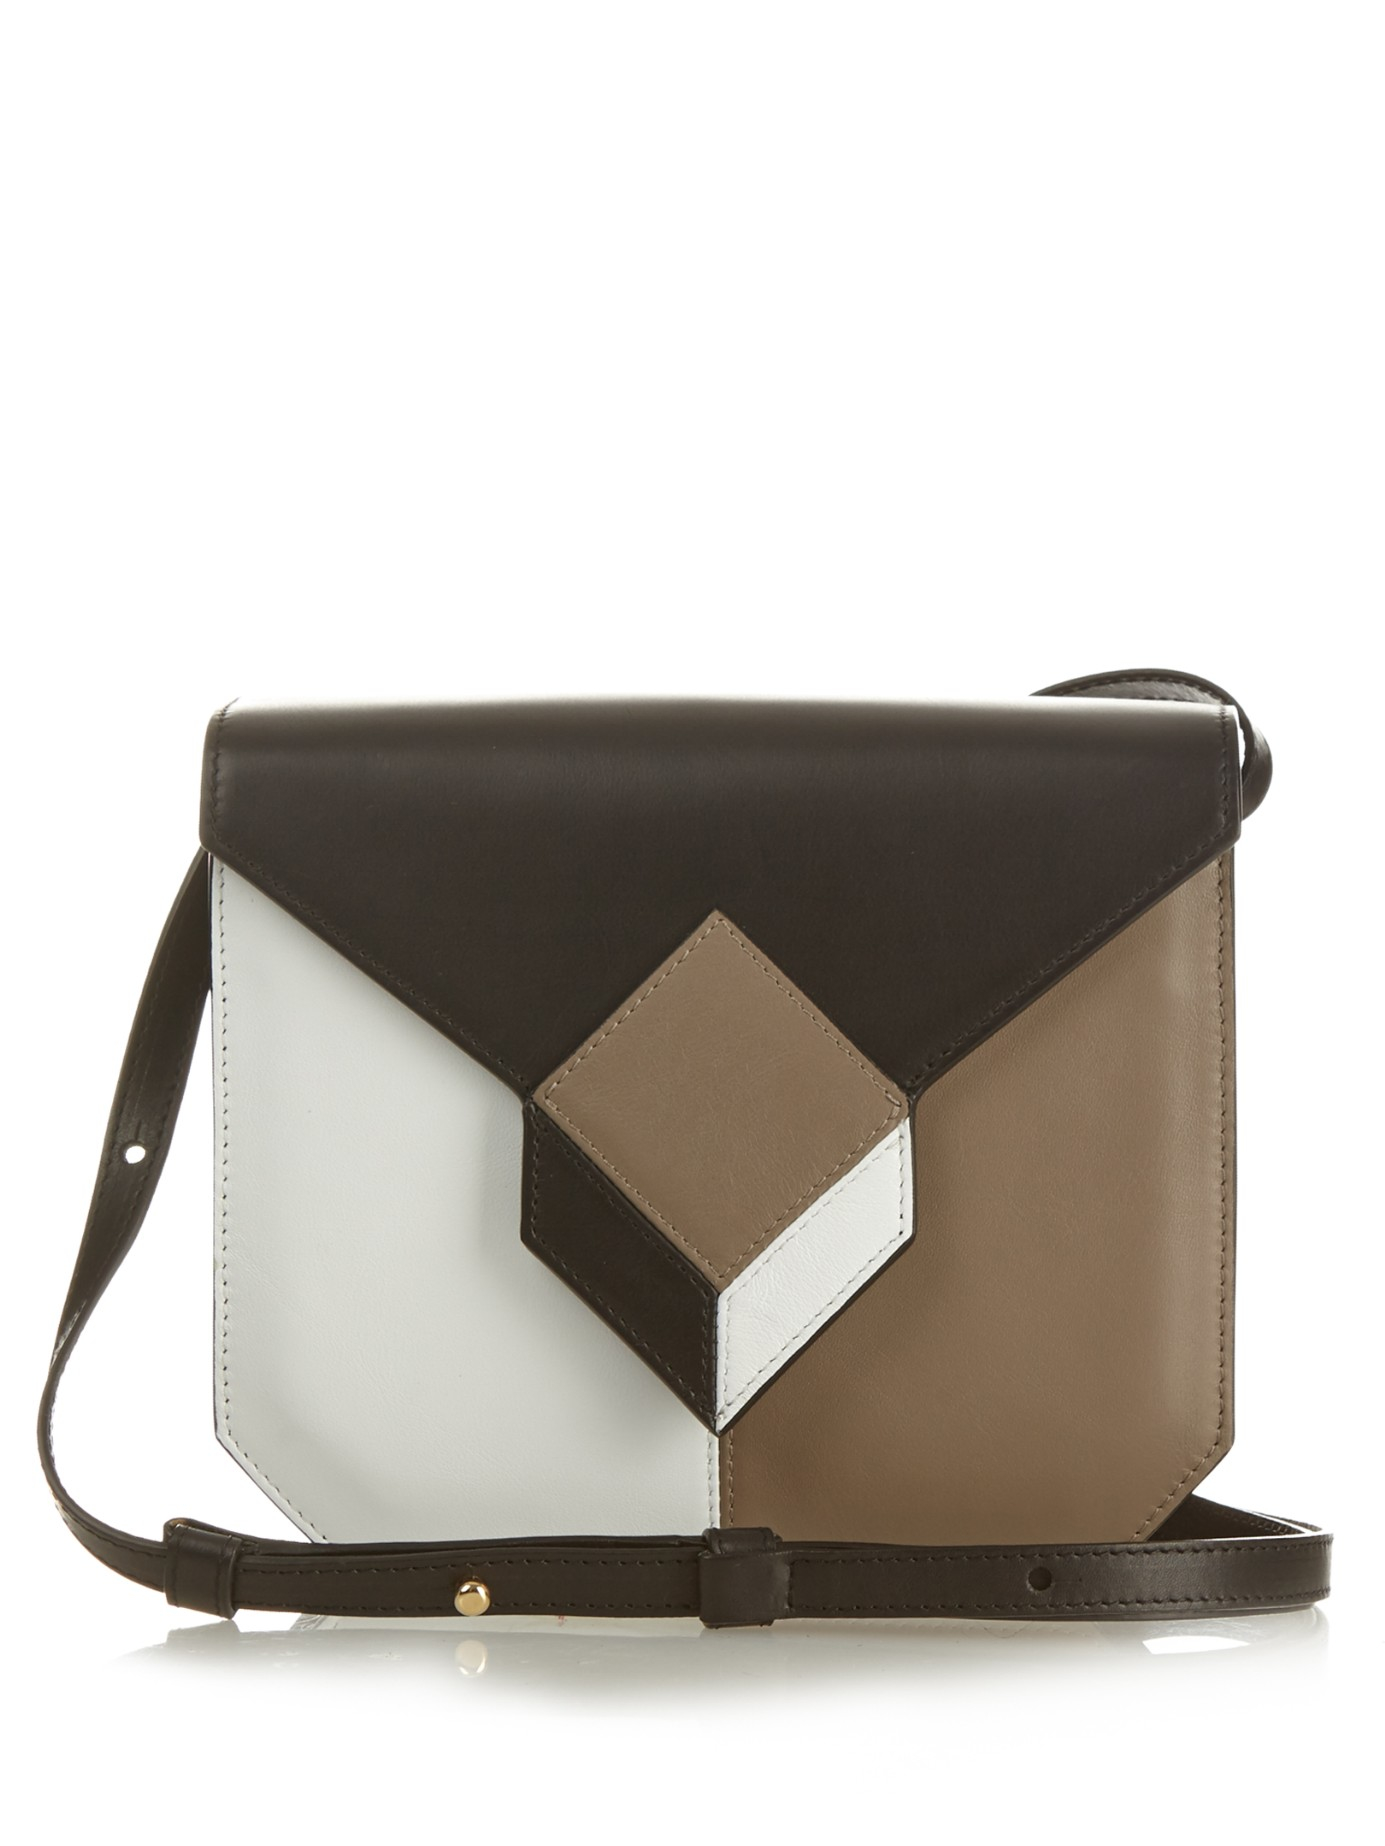 Prism Crossbody bag Pierre Hardy Shipping Outlet Store Online Outlet Get To Buy Clearance Manchester Great Sale Free Shipping Footlocker Finishline 74YTWXkj3p